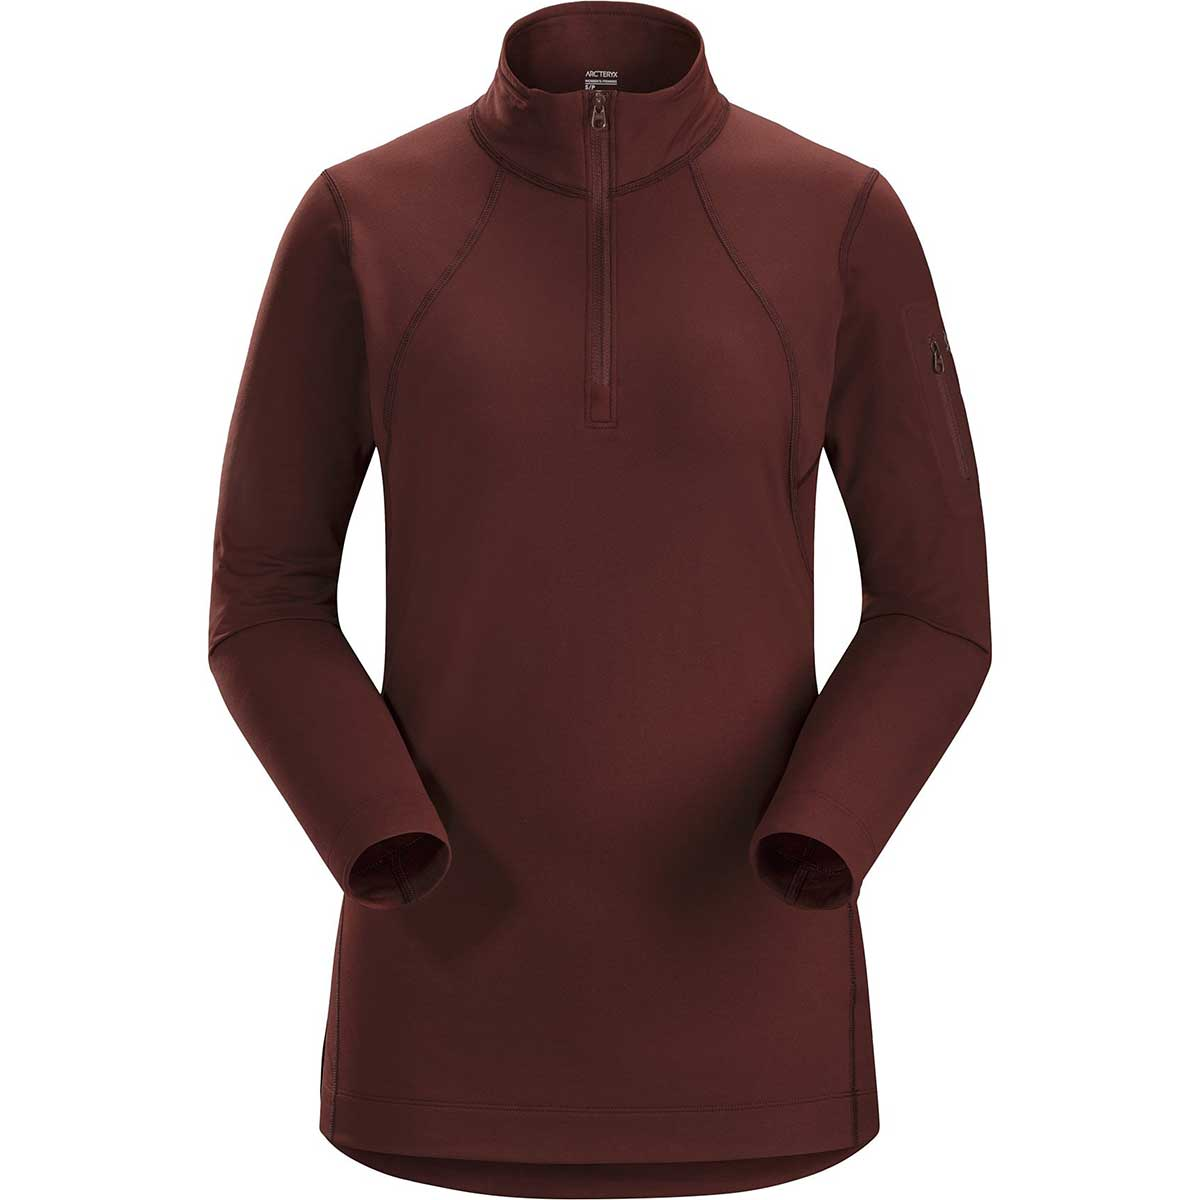 Arcteryx women's RHO LT Zip Neck Top in Flux main view